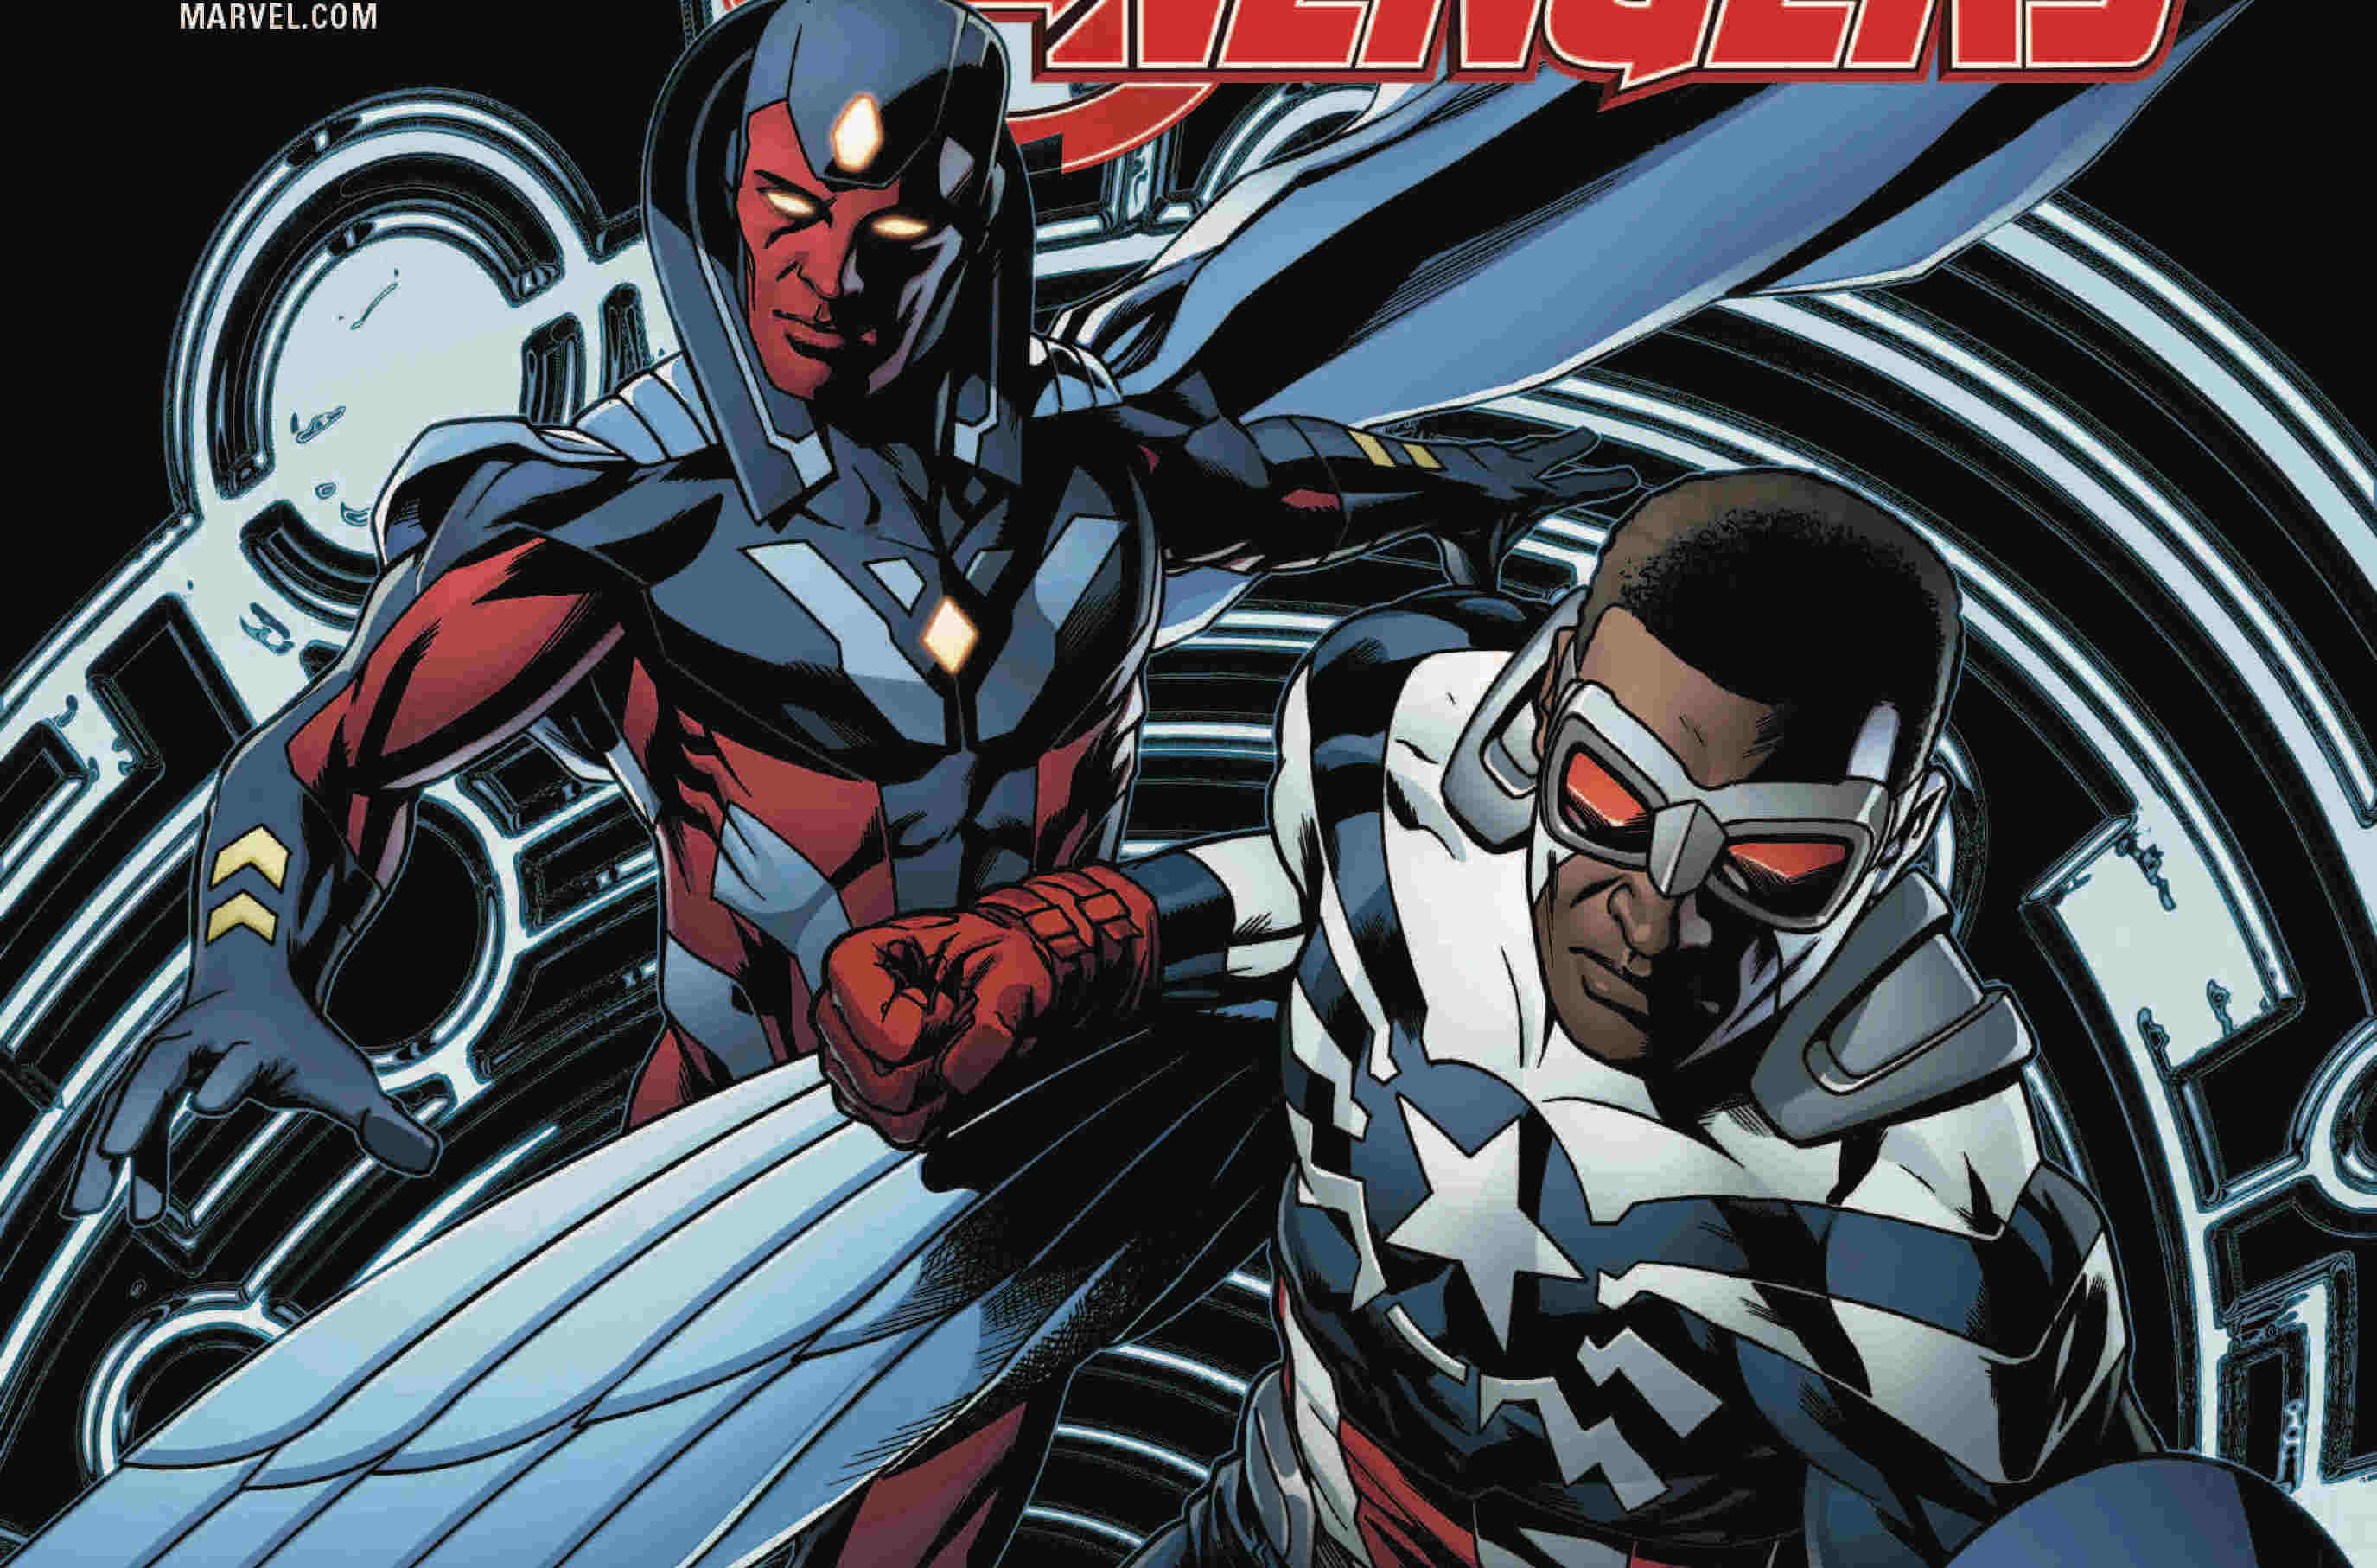 Marvel Preview: All-New All-Different Avengers #14